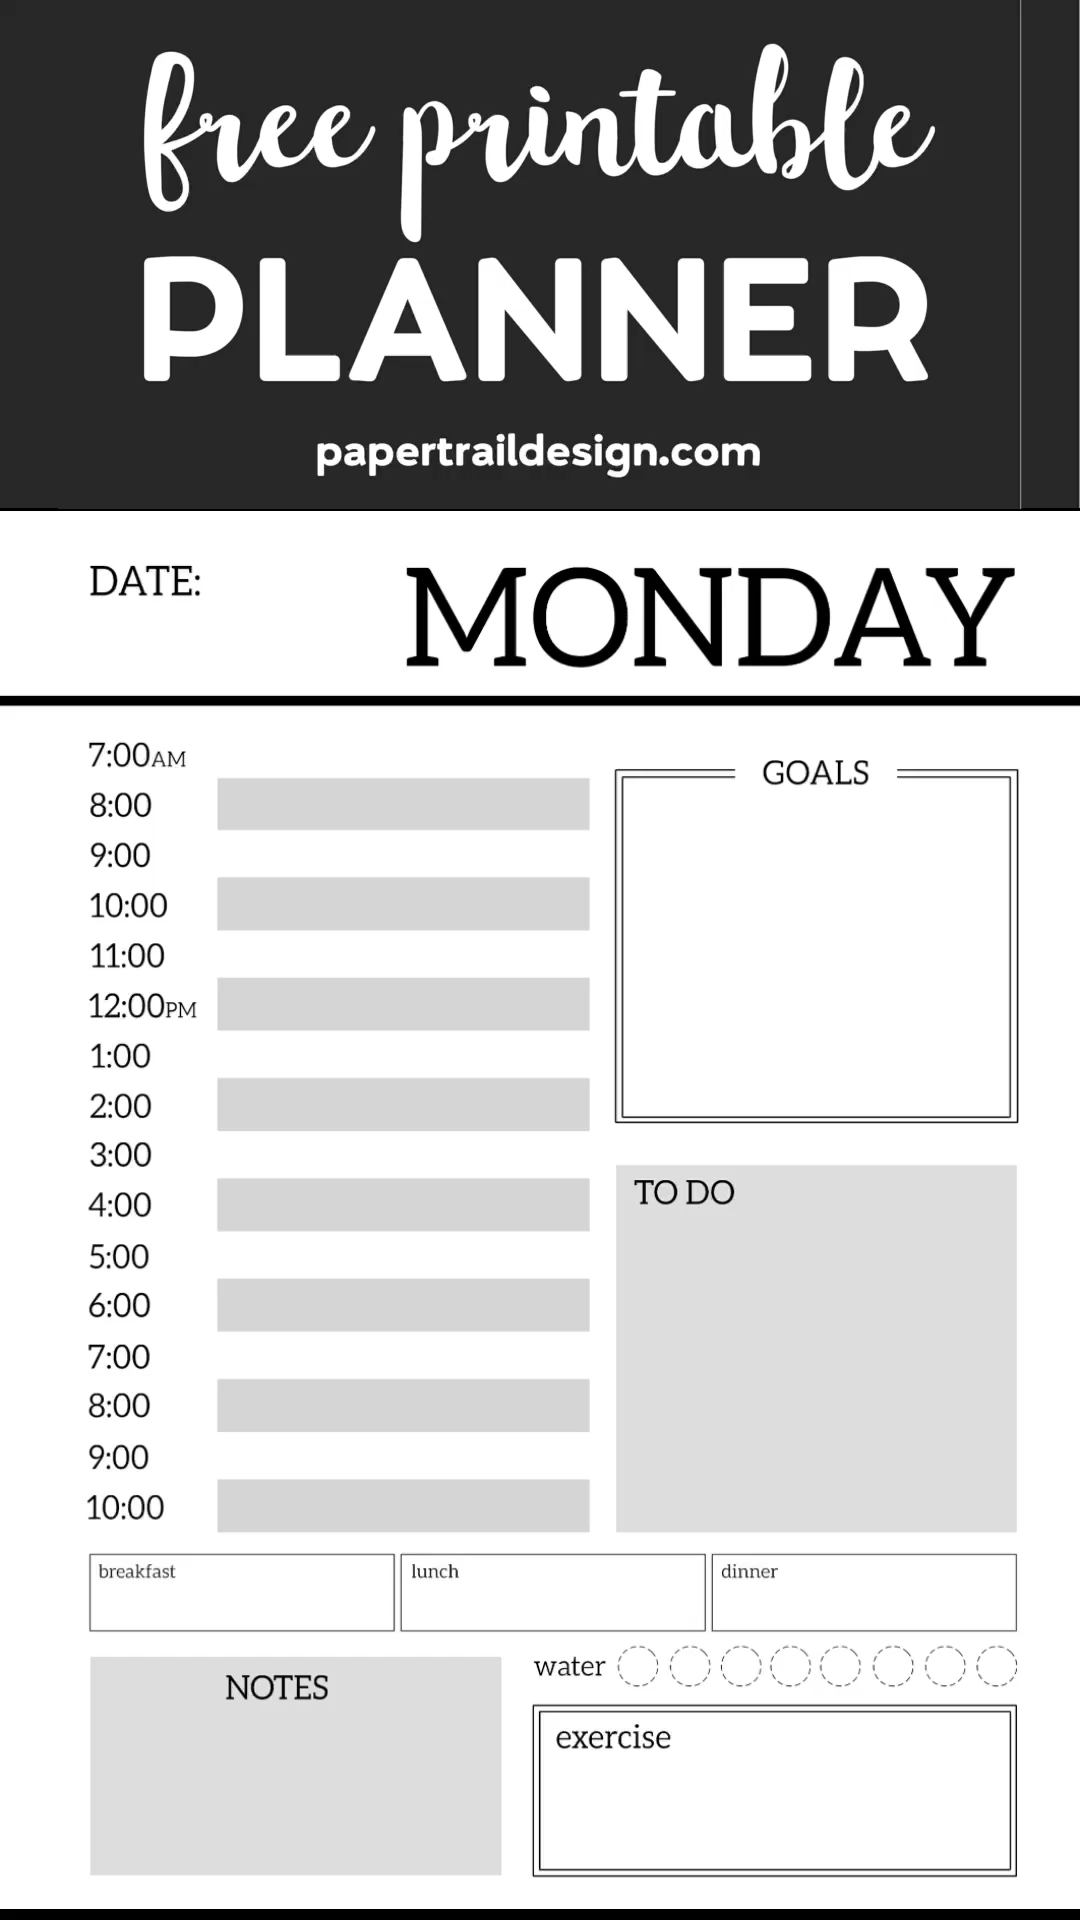 Monthly Planner Template {Printable Planner Pages}. Free printable day planner pages DIY. To do list, menu plan, weekly meal plan, calendar to get organized. #papertraildesign #planners #plannerprintables #plannerprintable #monthlyplanner #freeprintable #freeprintableplanner #todo #dialyplanner #weeklyplanner